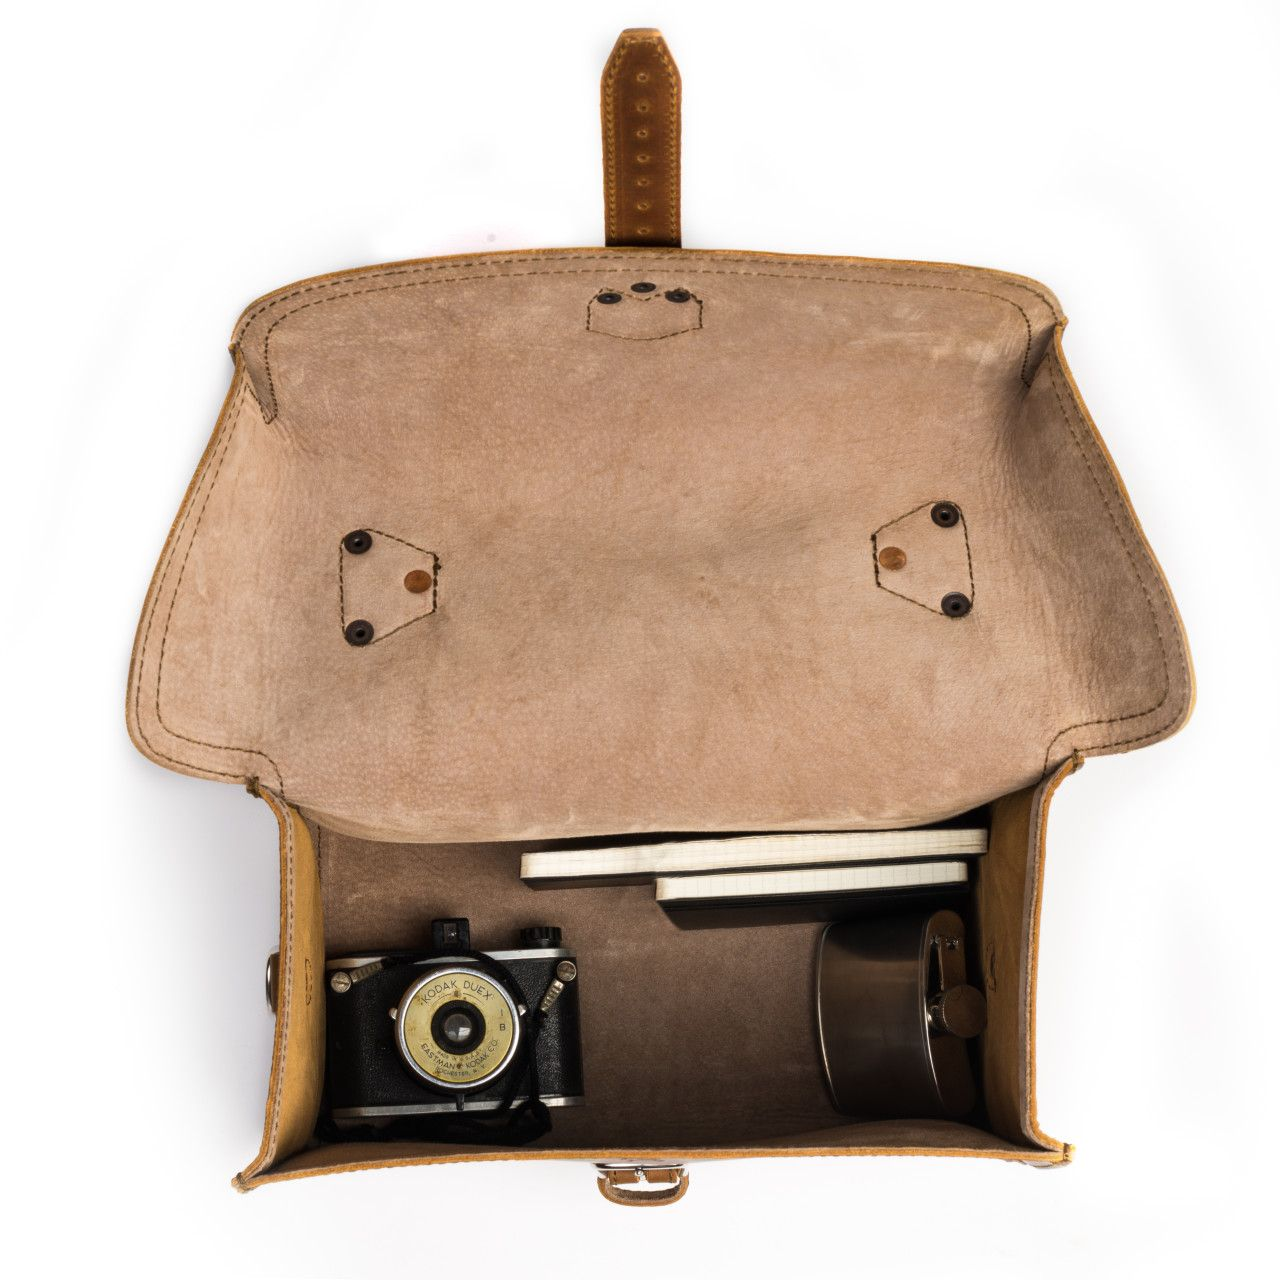 For your most valuable souvenirs suitcase will be leather gadget bag large in tobacco leather